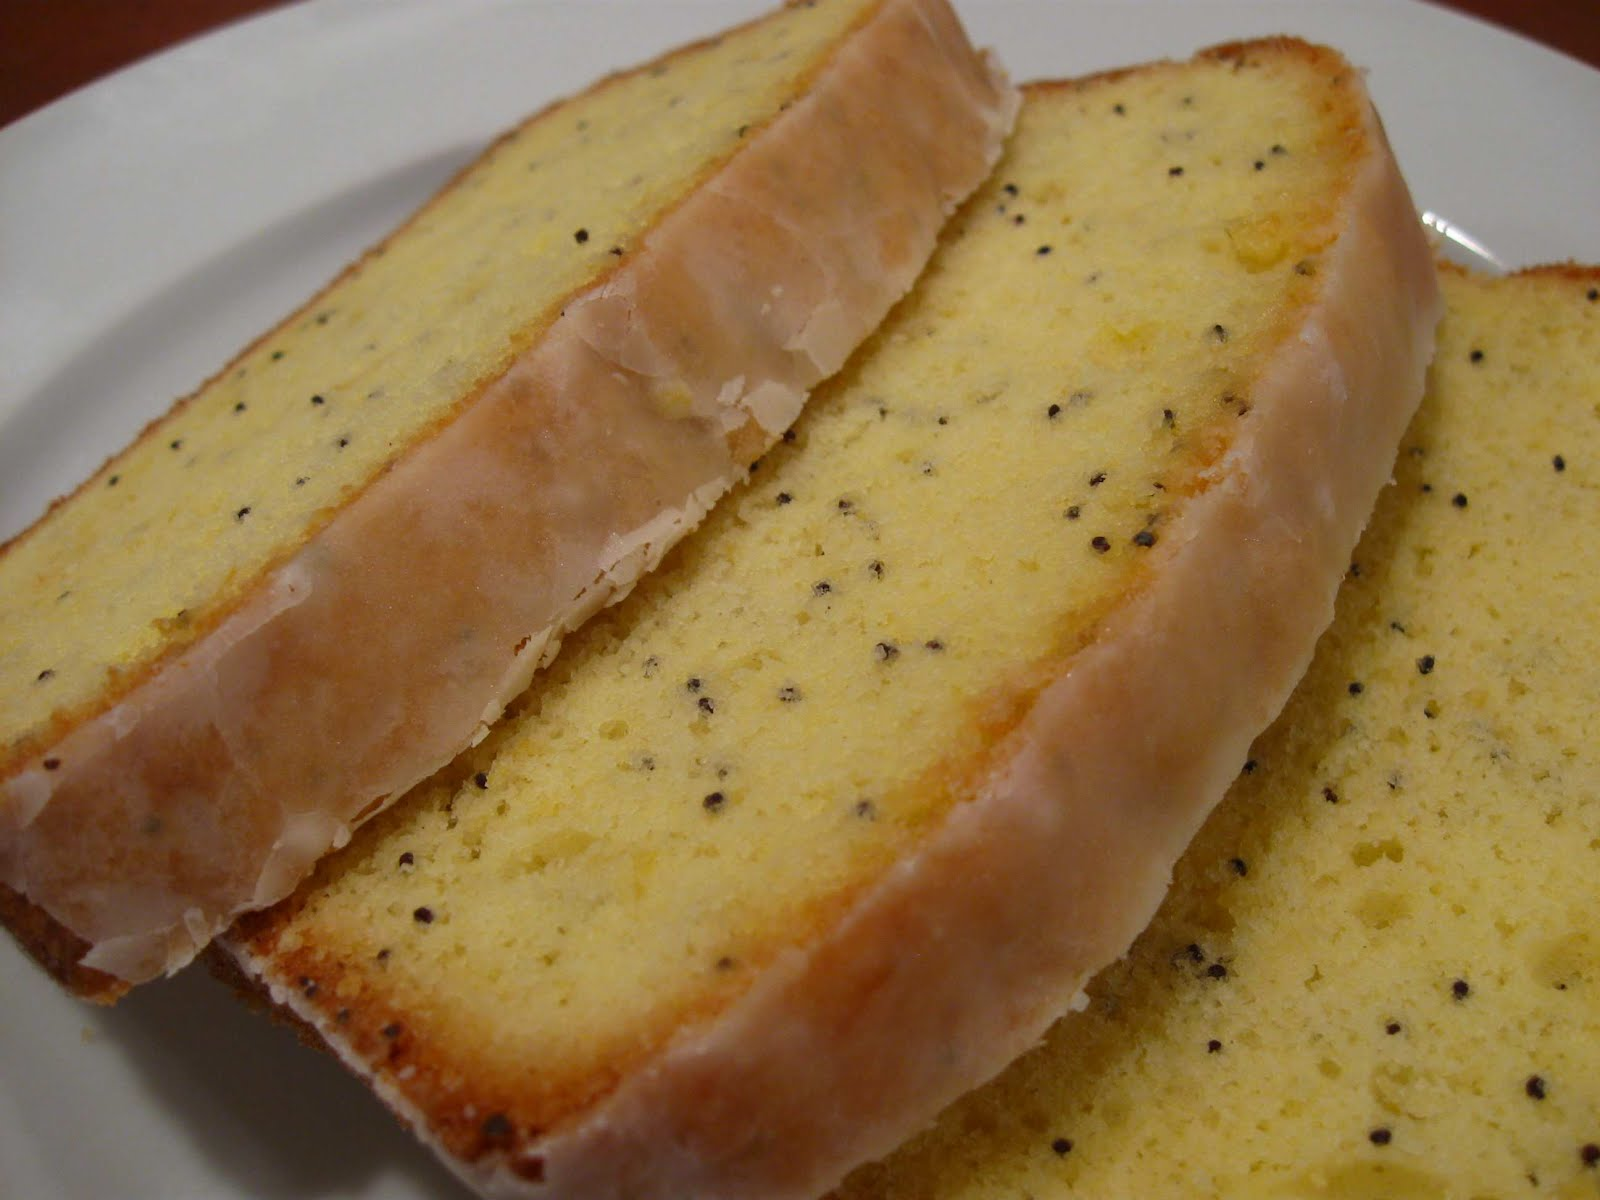 Cooking From Scratch: Lemon Poppy Seed Pound Cake